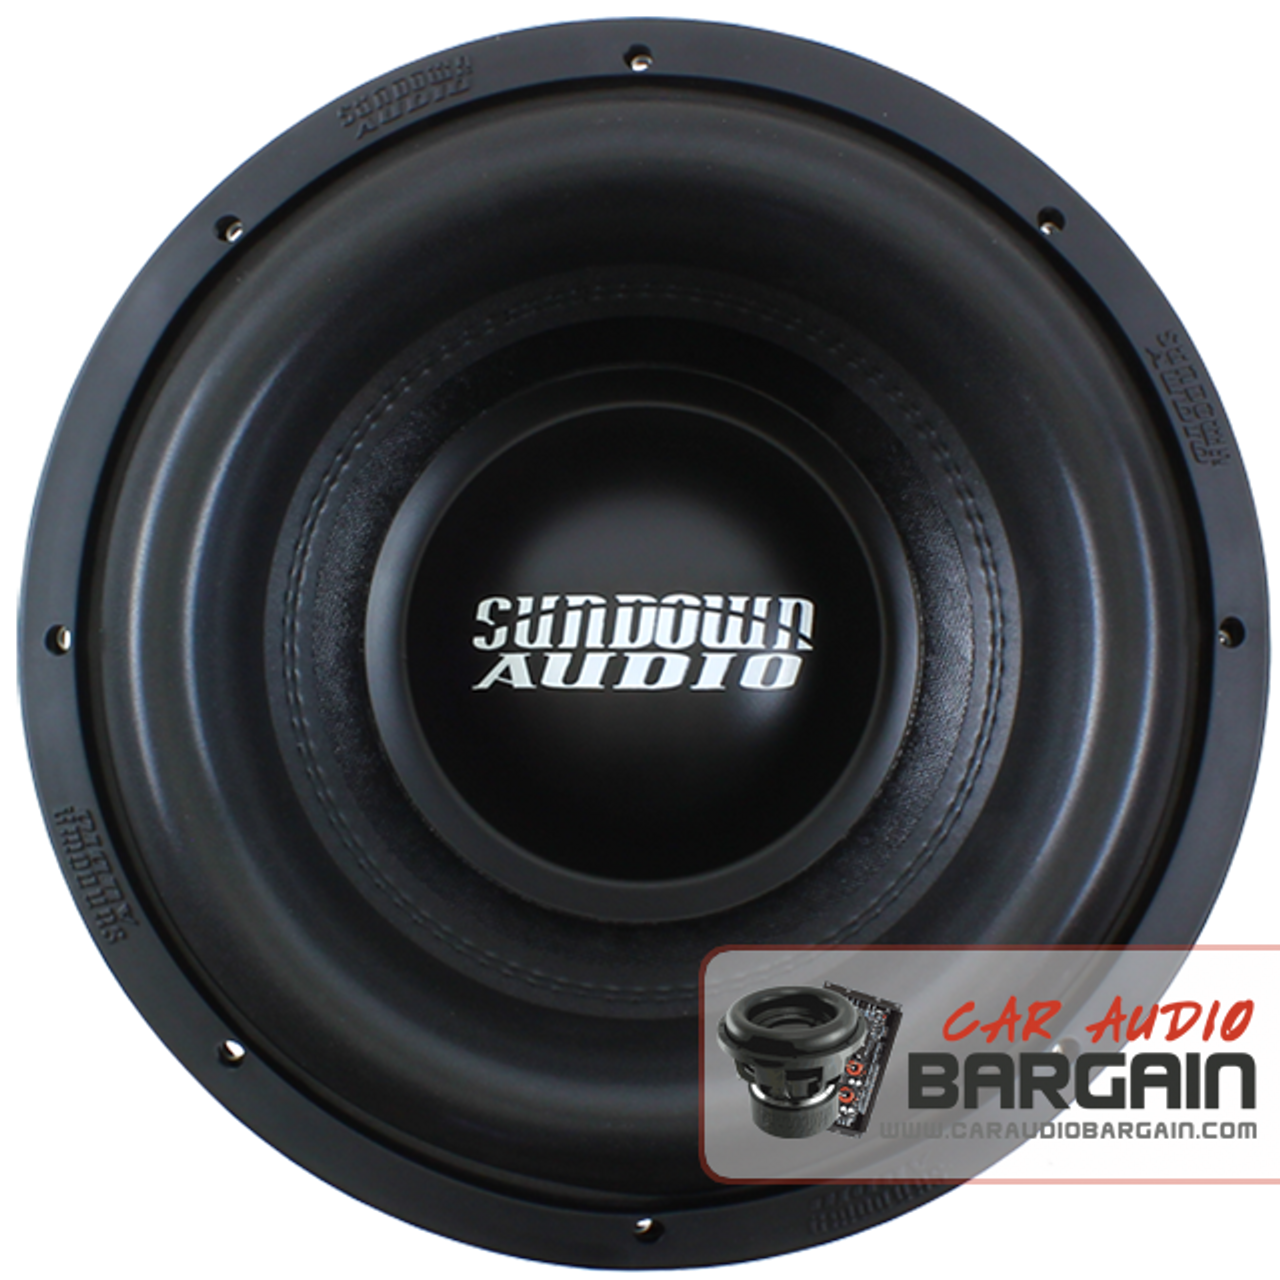 Sundown Audio X-12 v2 (free box design with 2 or more)